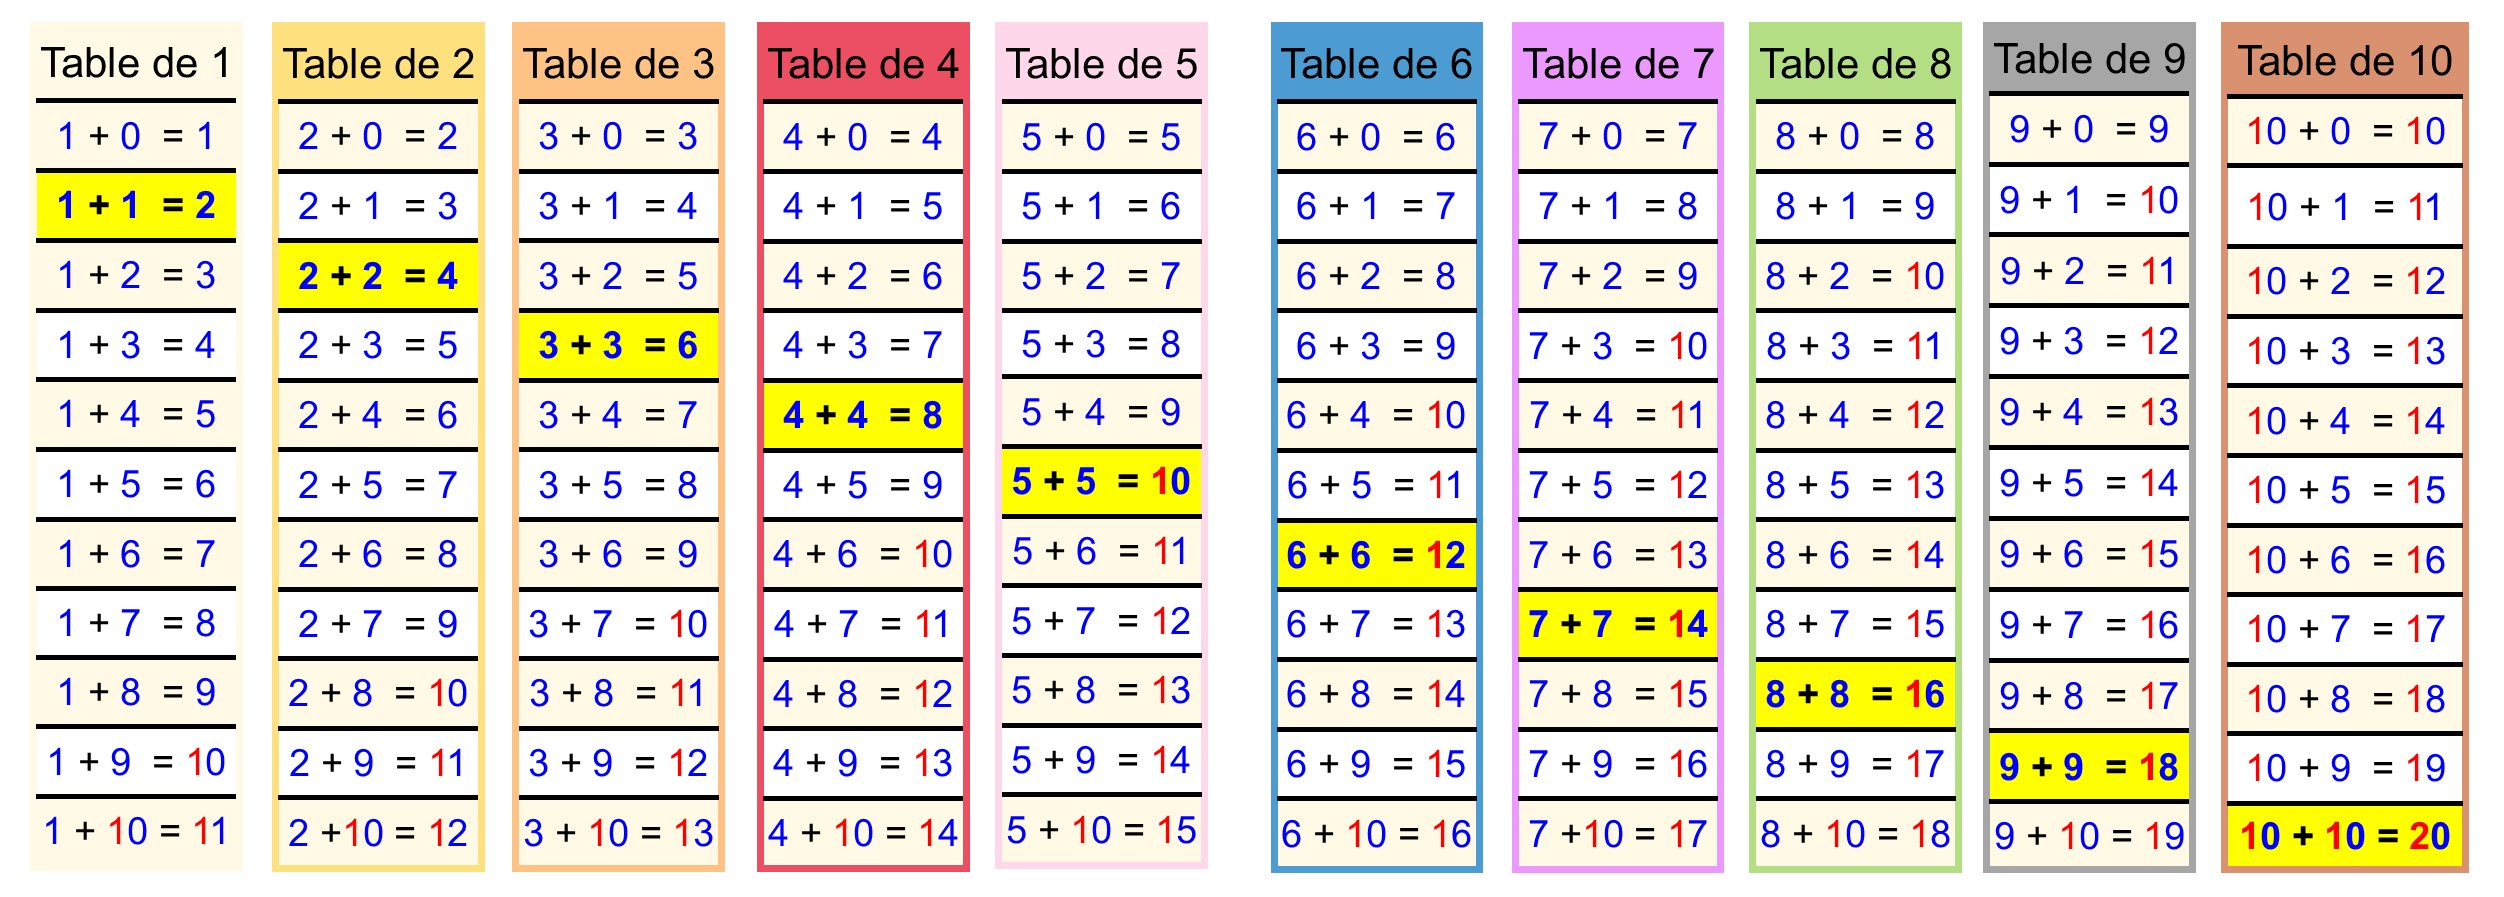 Calculer cartable fantastique - Table de multiplication vierge a imprimer ...